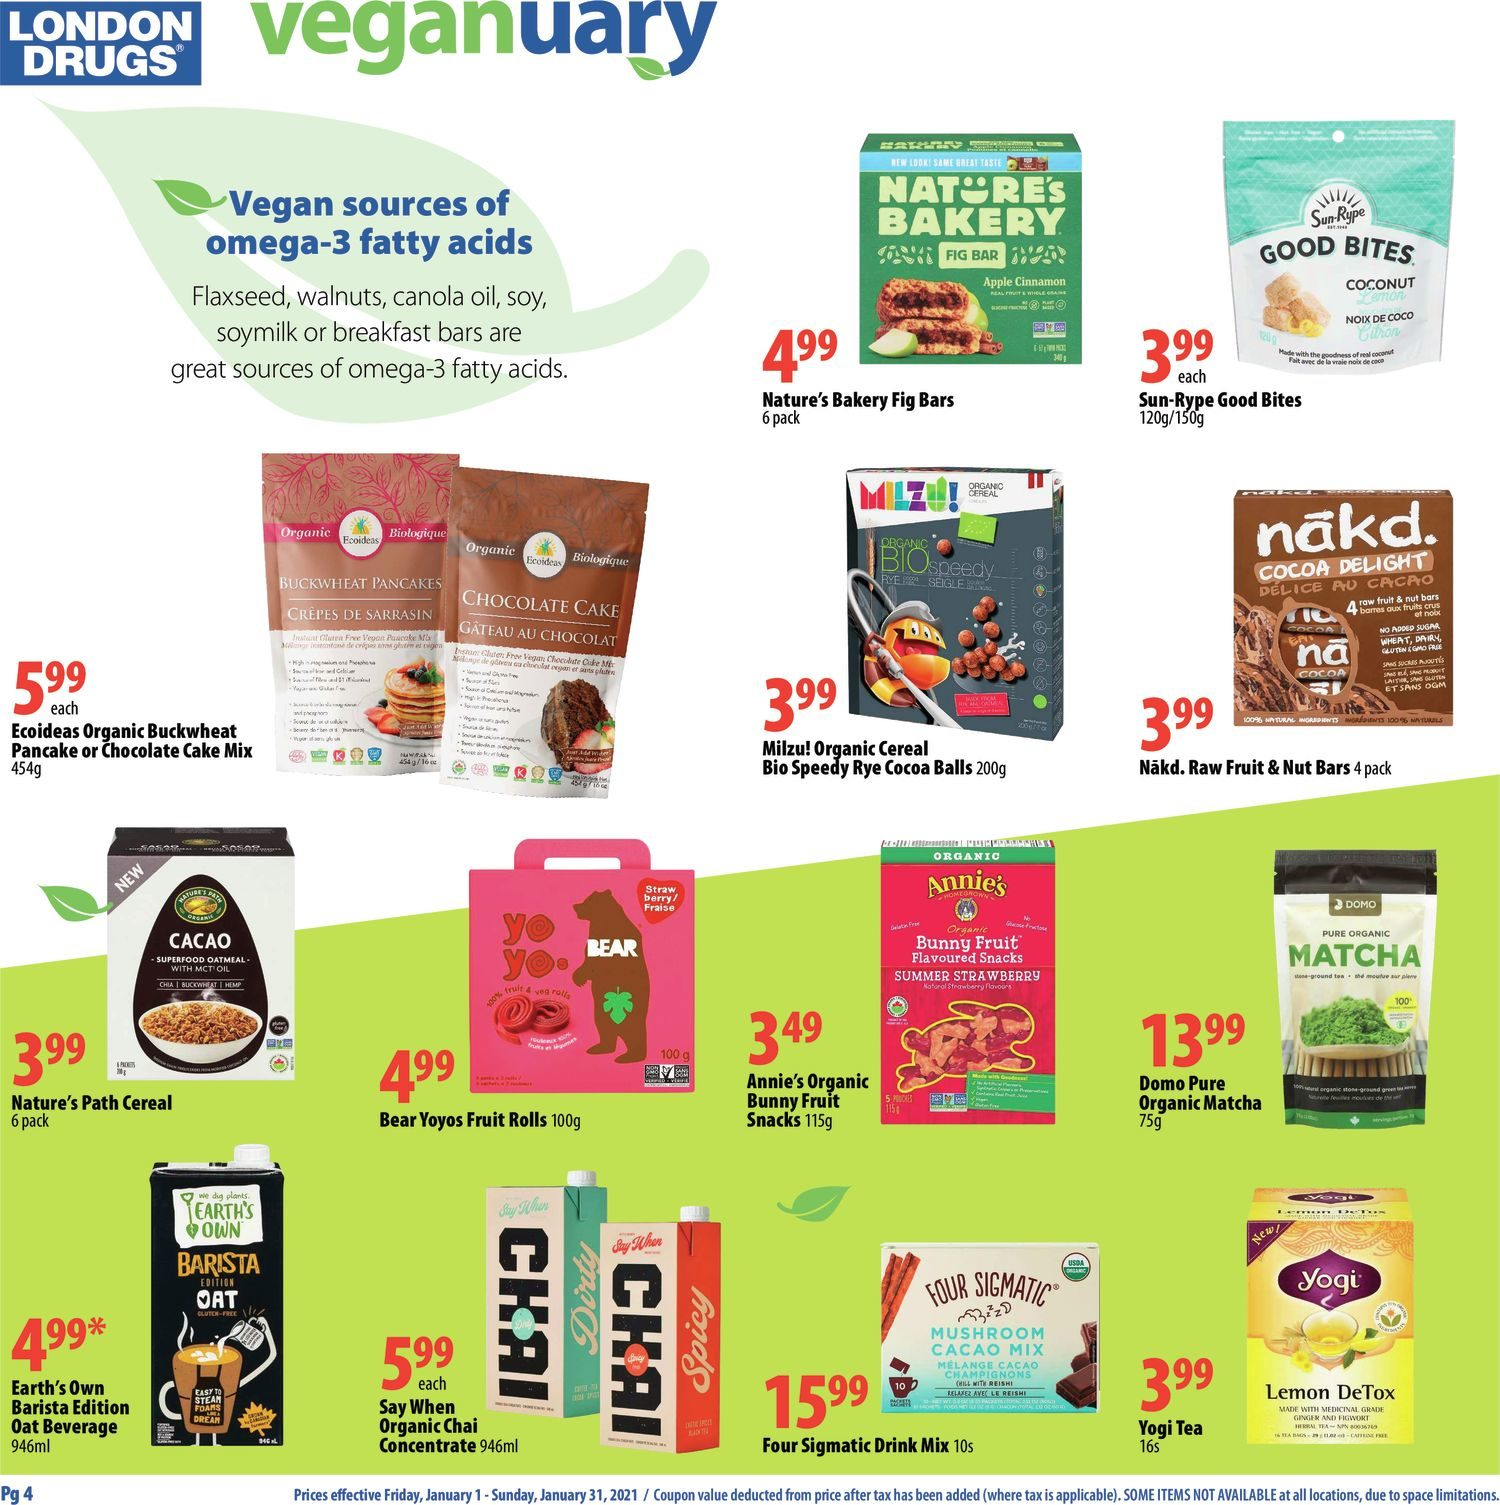 London Drugs - Veganuary - Page 6